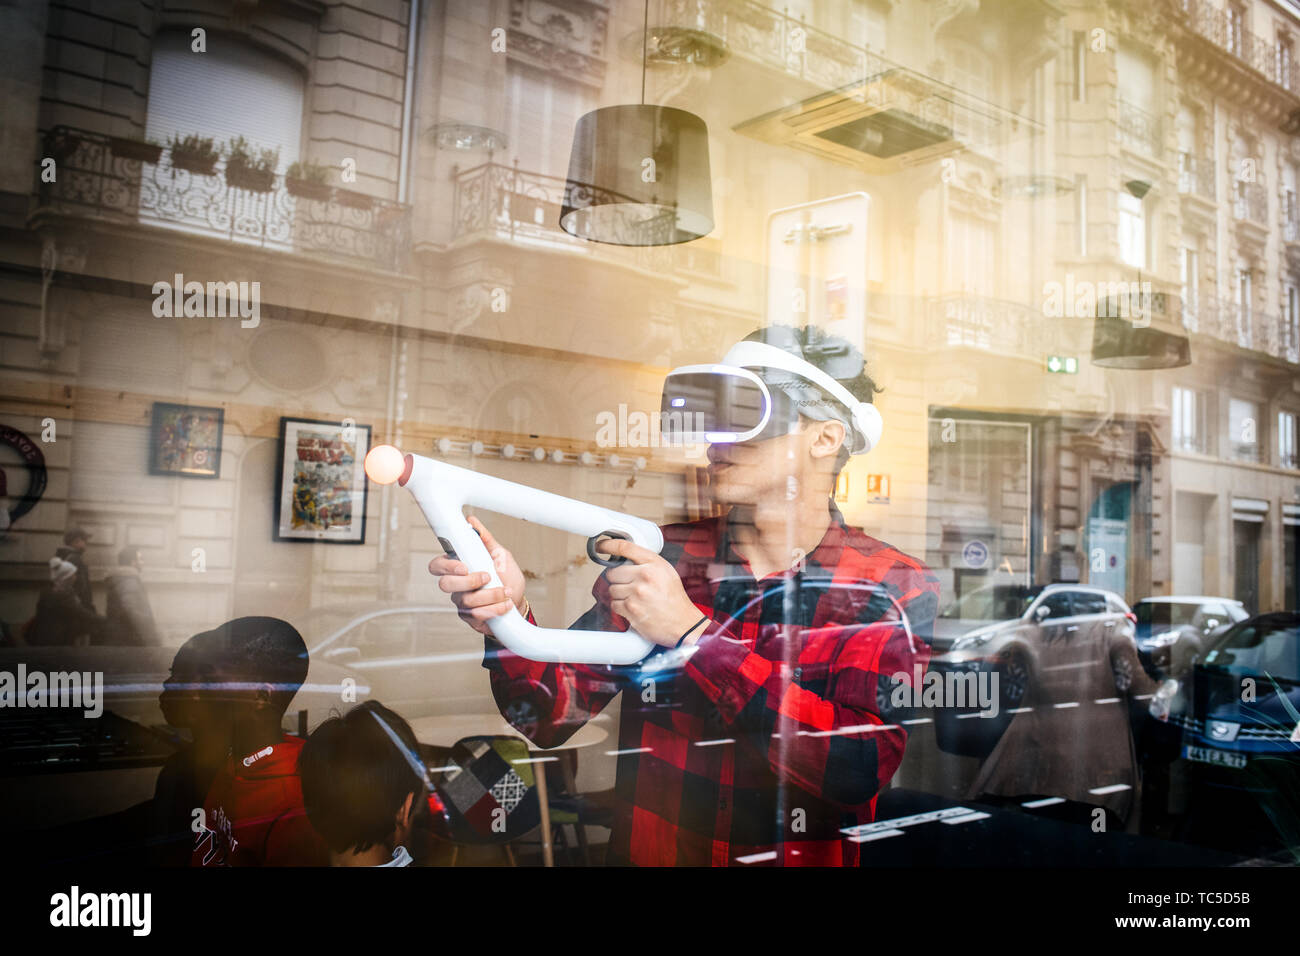 Strasbourg, France - Dec 27, 2017: Man playing inside free game zone with VR set and Precise Aiming for PlayStationVR Aim Controller - city reflection in shwocase window - Stock Image